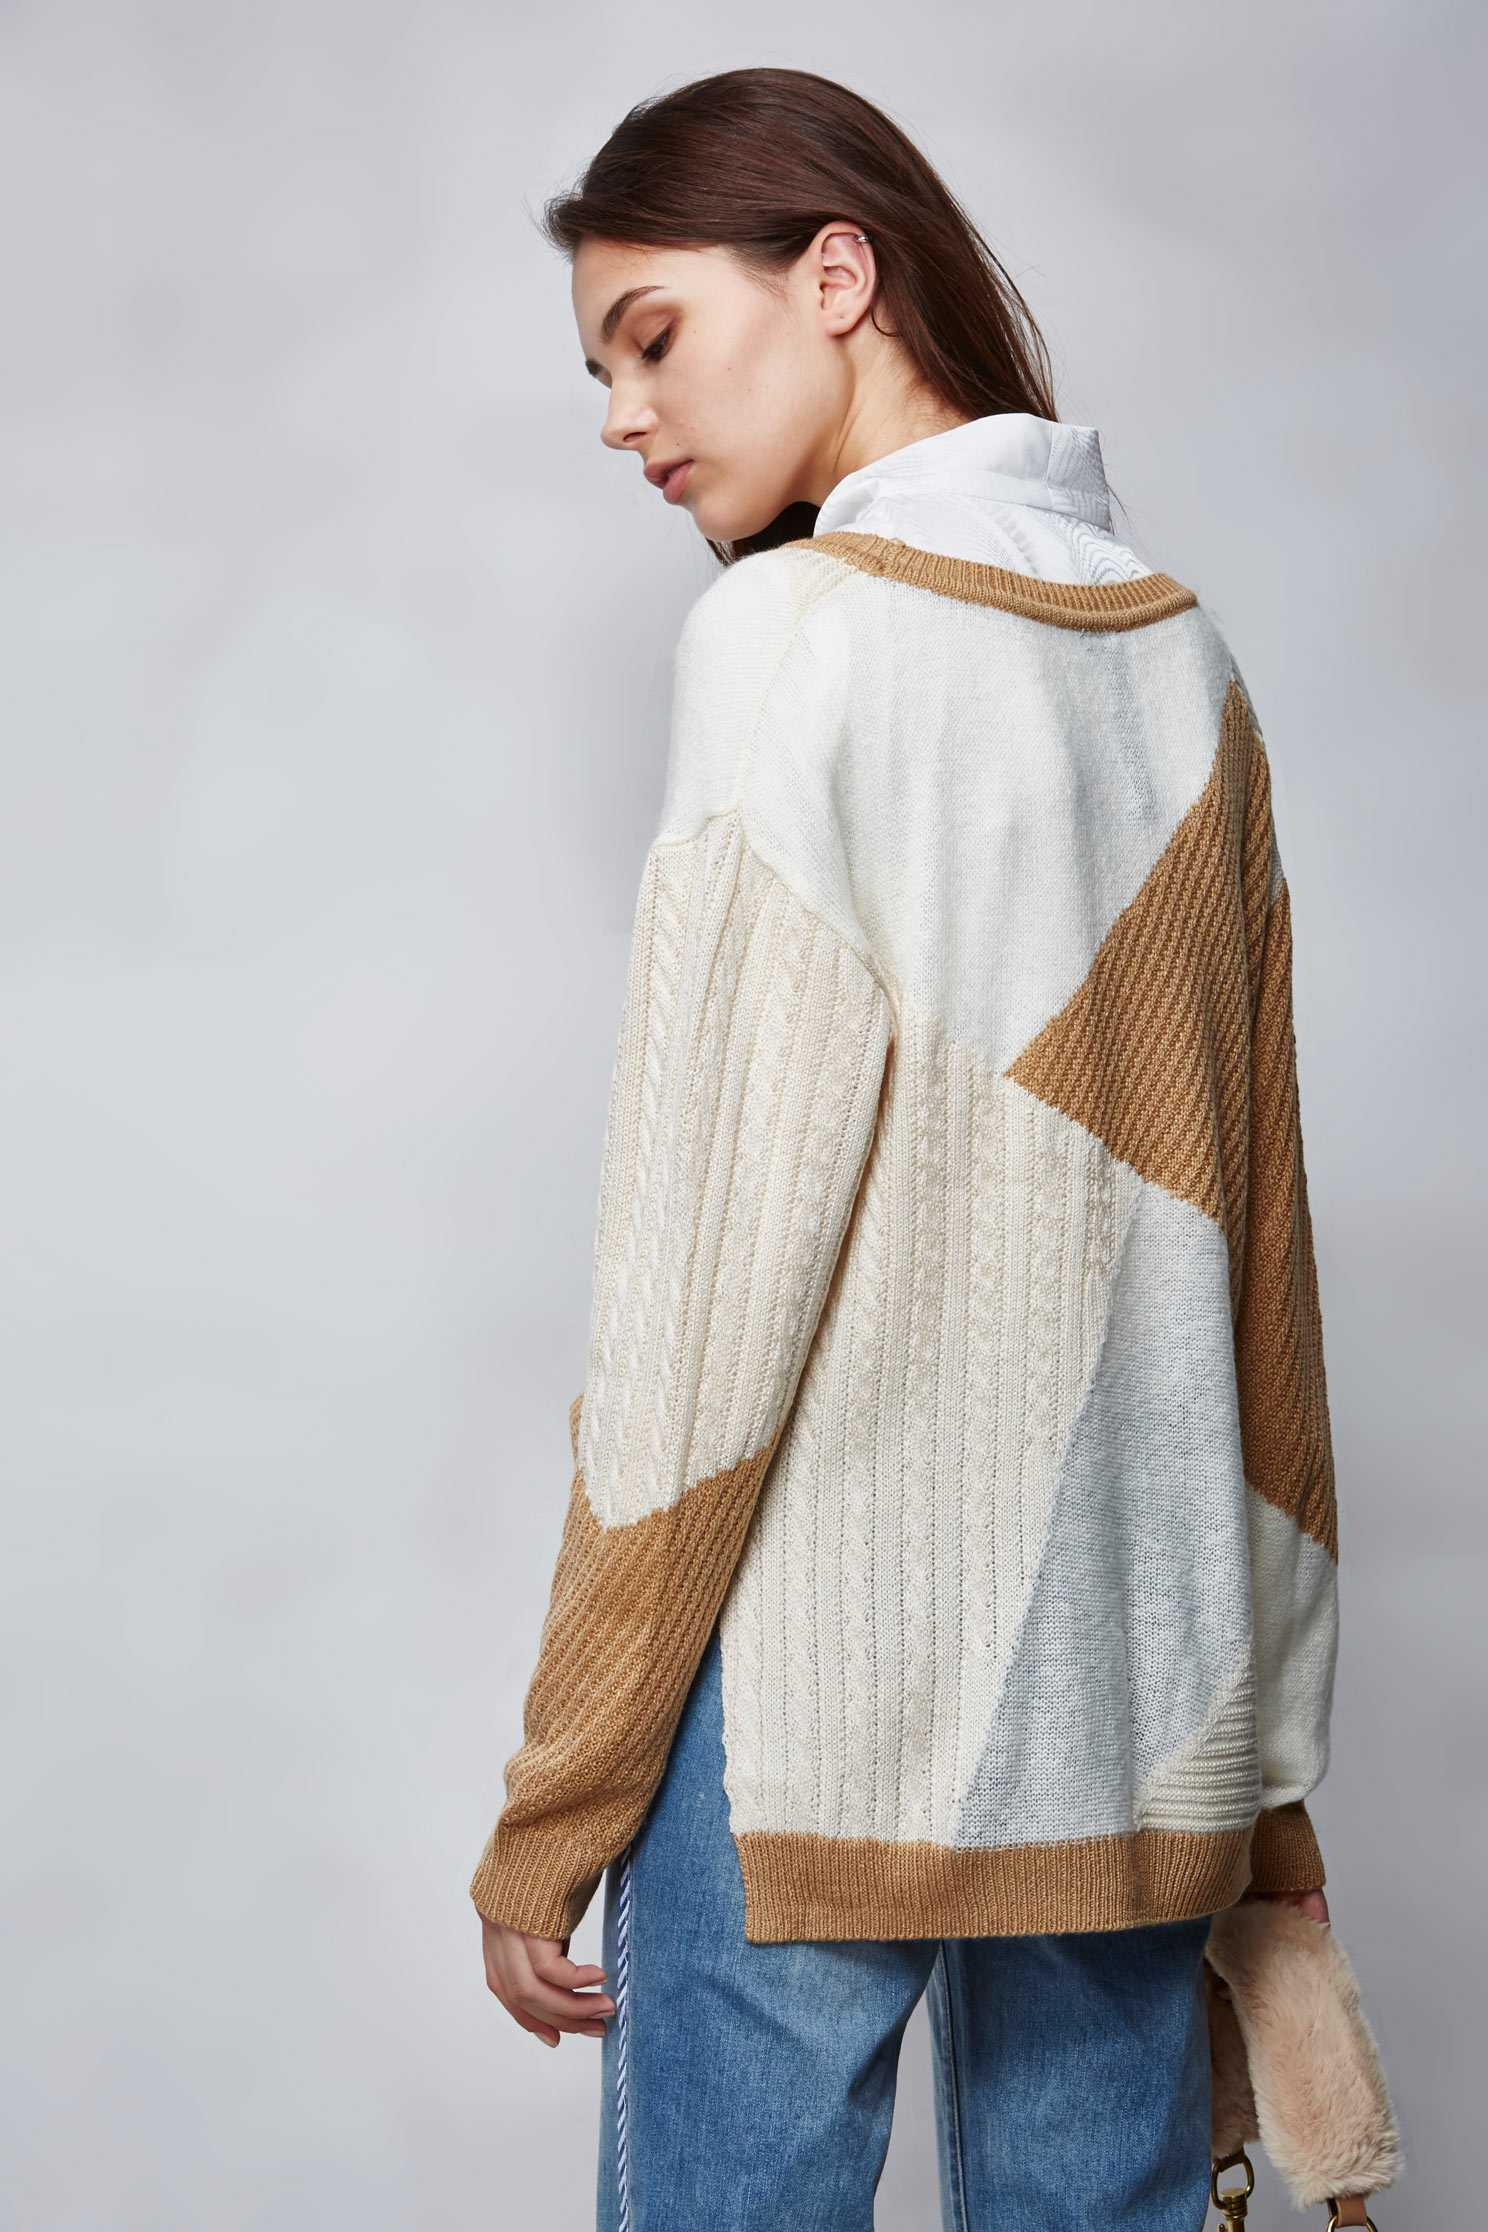 Khaki lump knitted top,Top,knitting,Knitted top,Knitted Top,長袖上衣